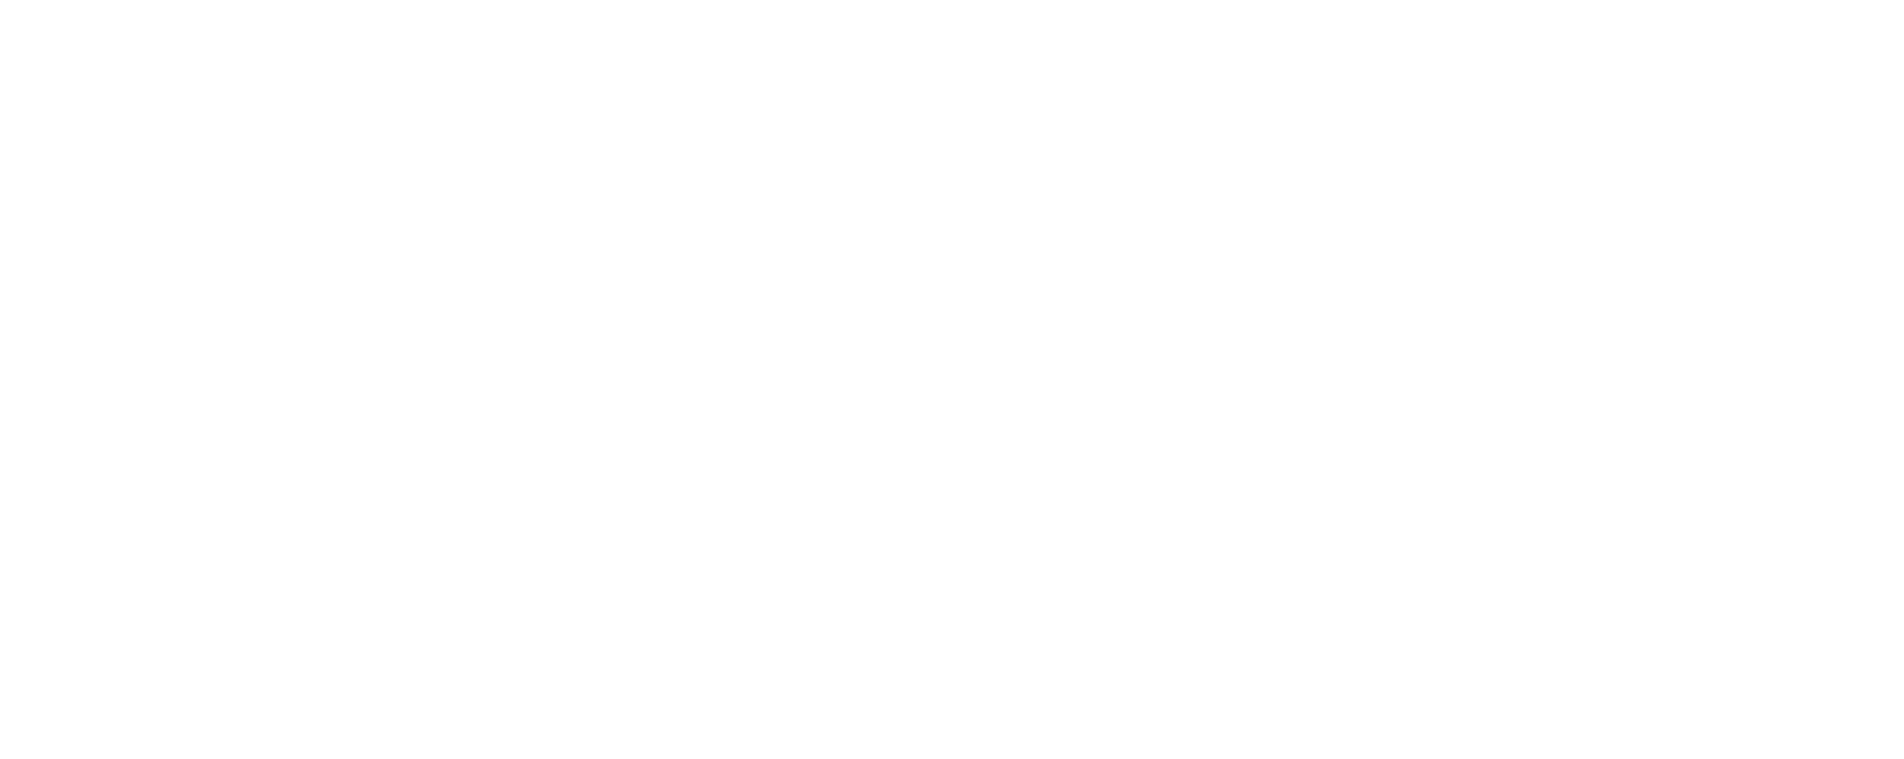 Powered by Dark Sky